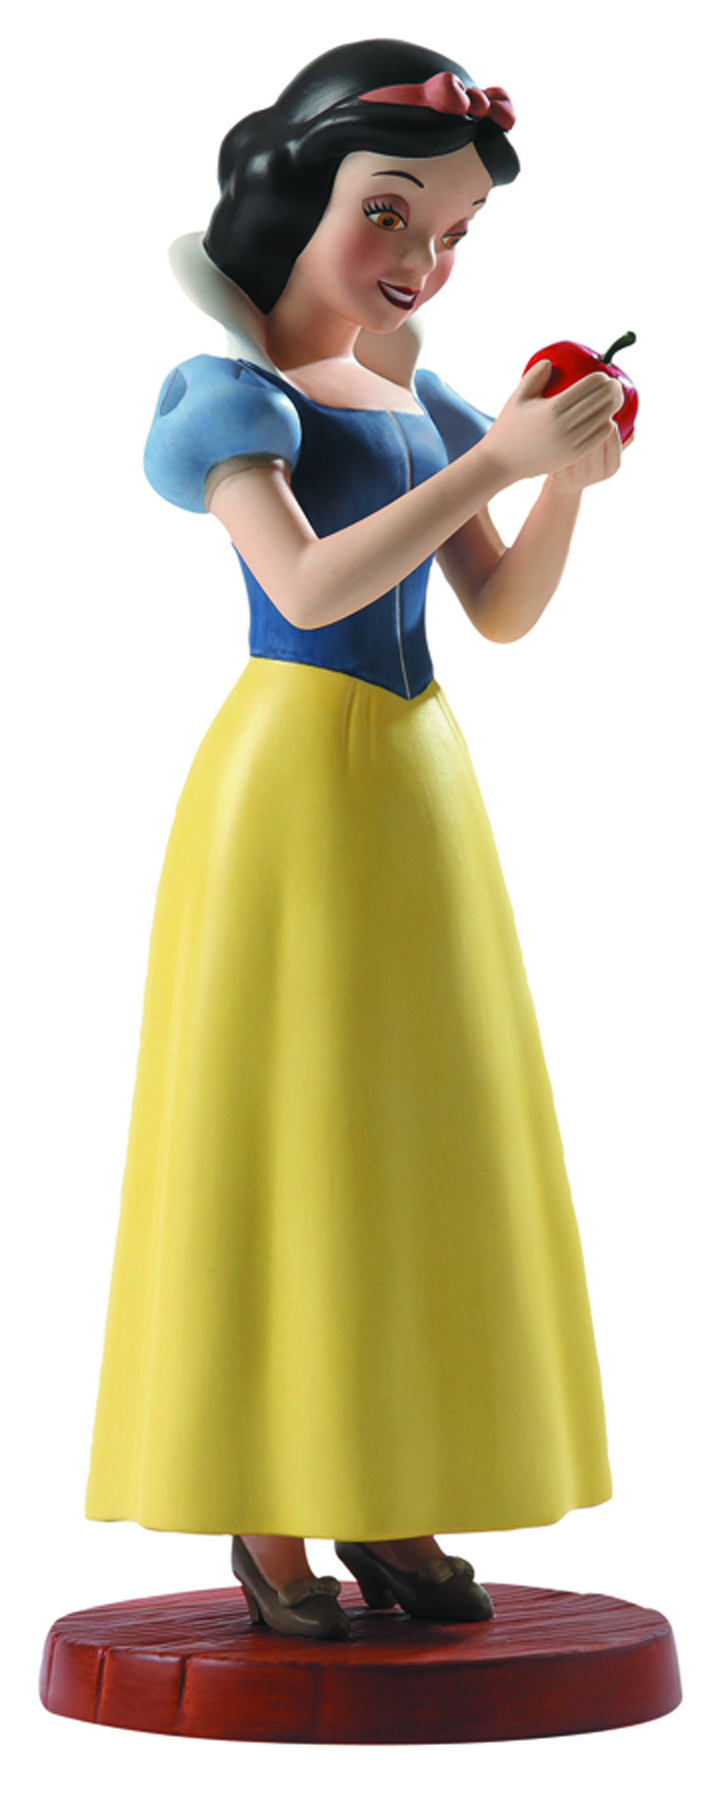 WDCC SNOW WHITE SWEET TEMPTATION STATUE